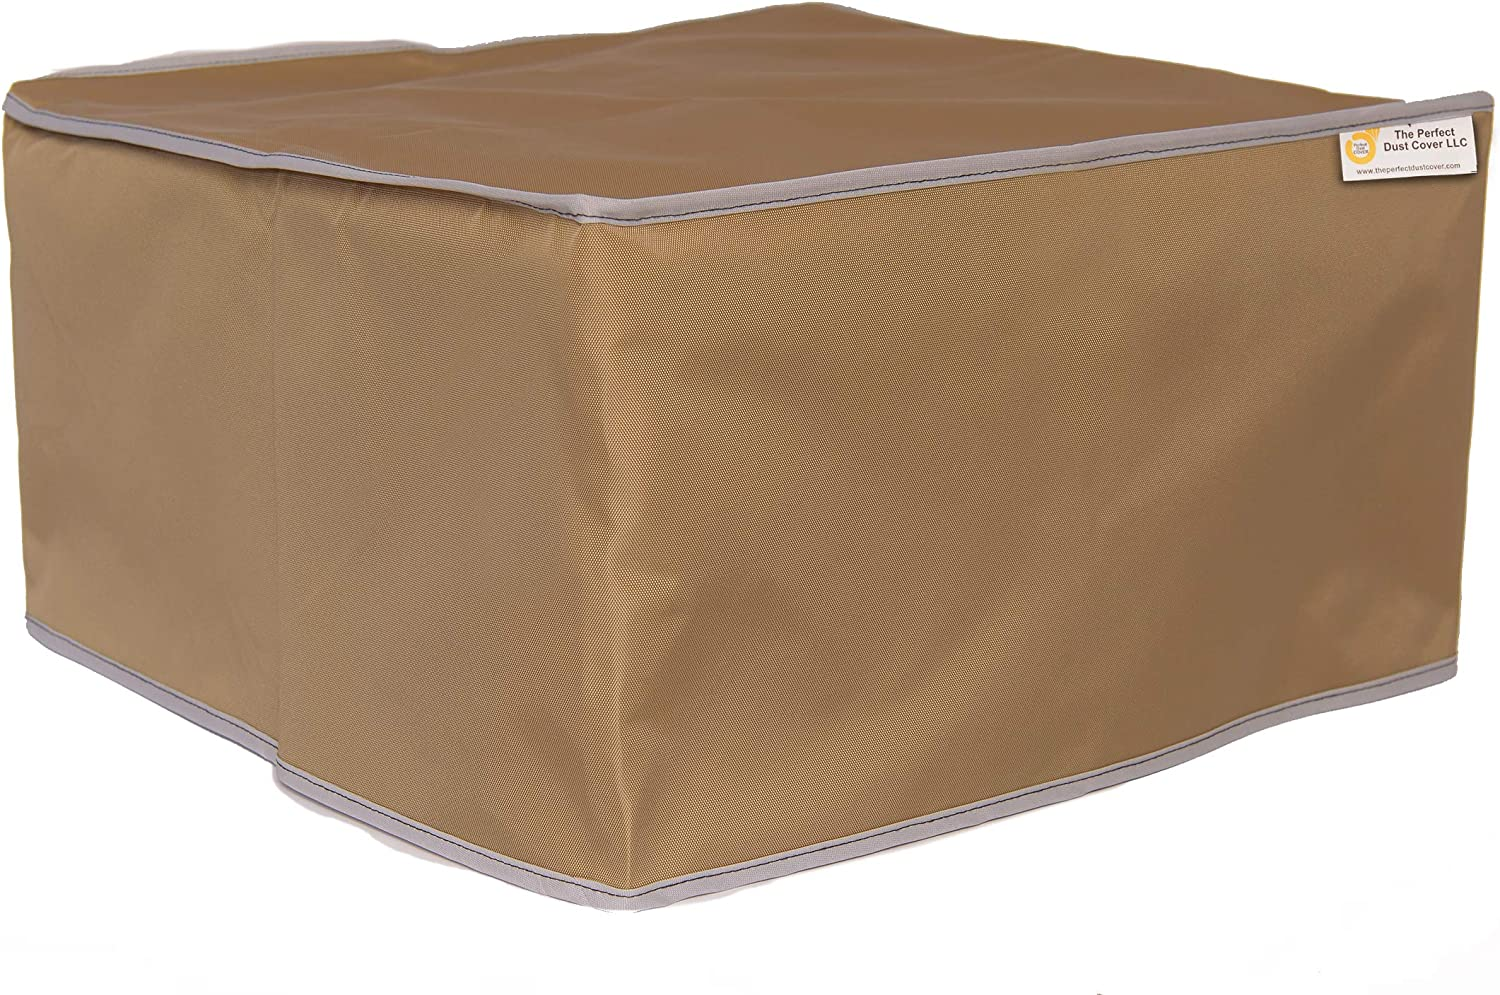 Online limited product The Perfect Dust Cover High quality Tan Epson Short SureColo Nylon for